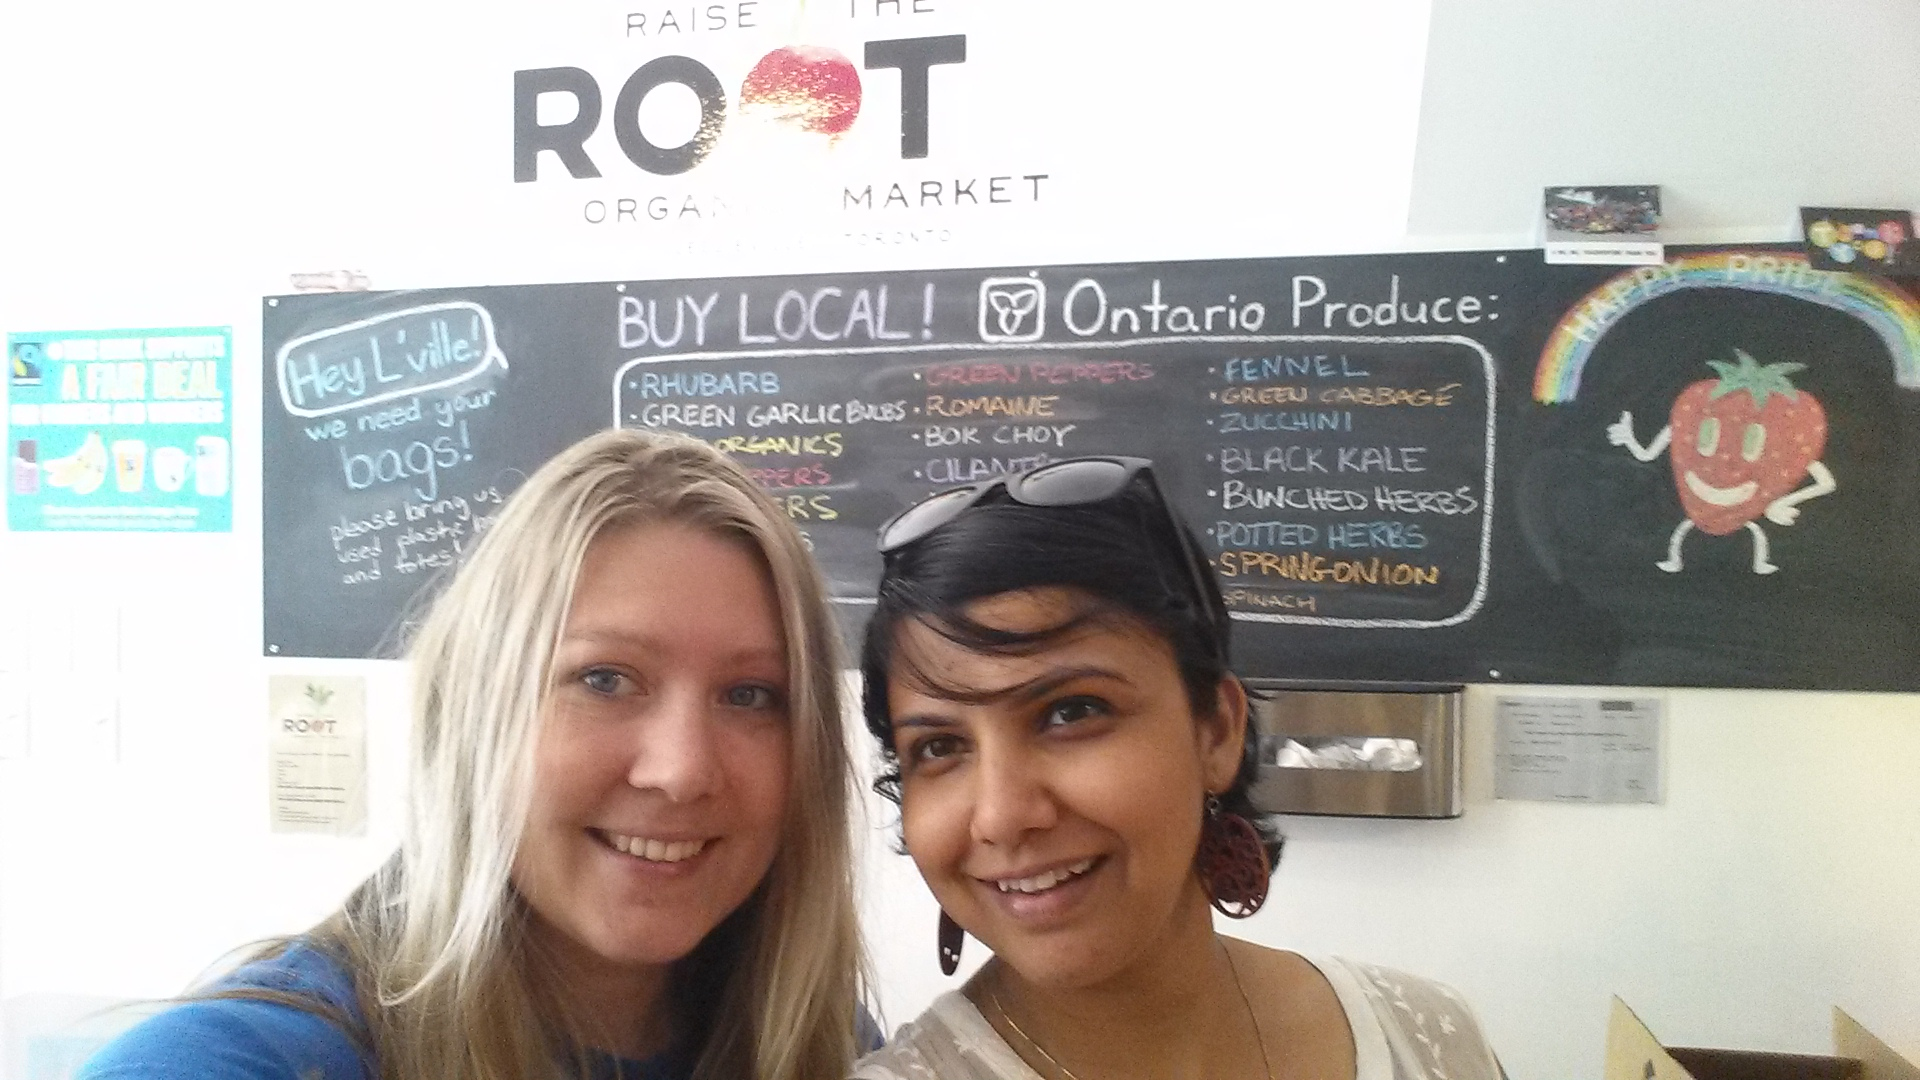 Raise the Root Organic market   Good Food for Good